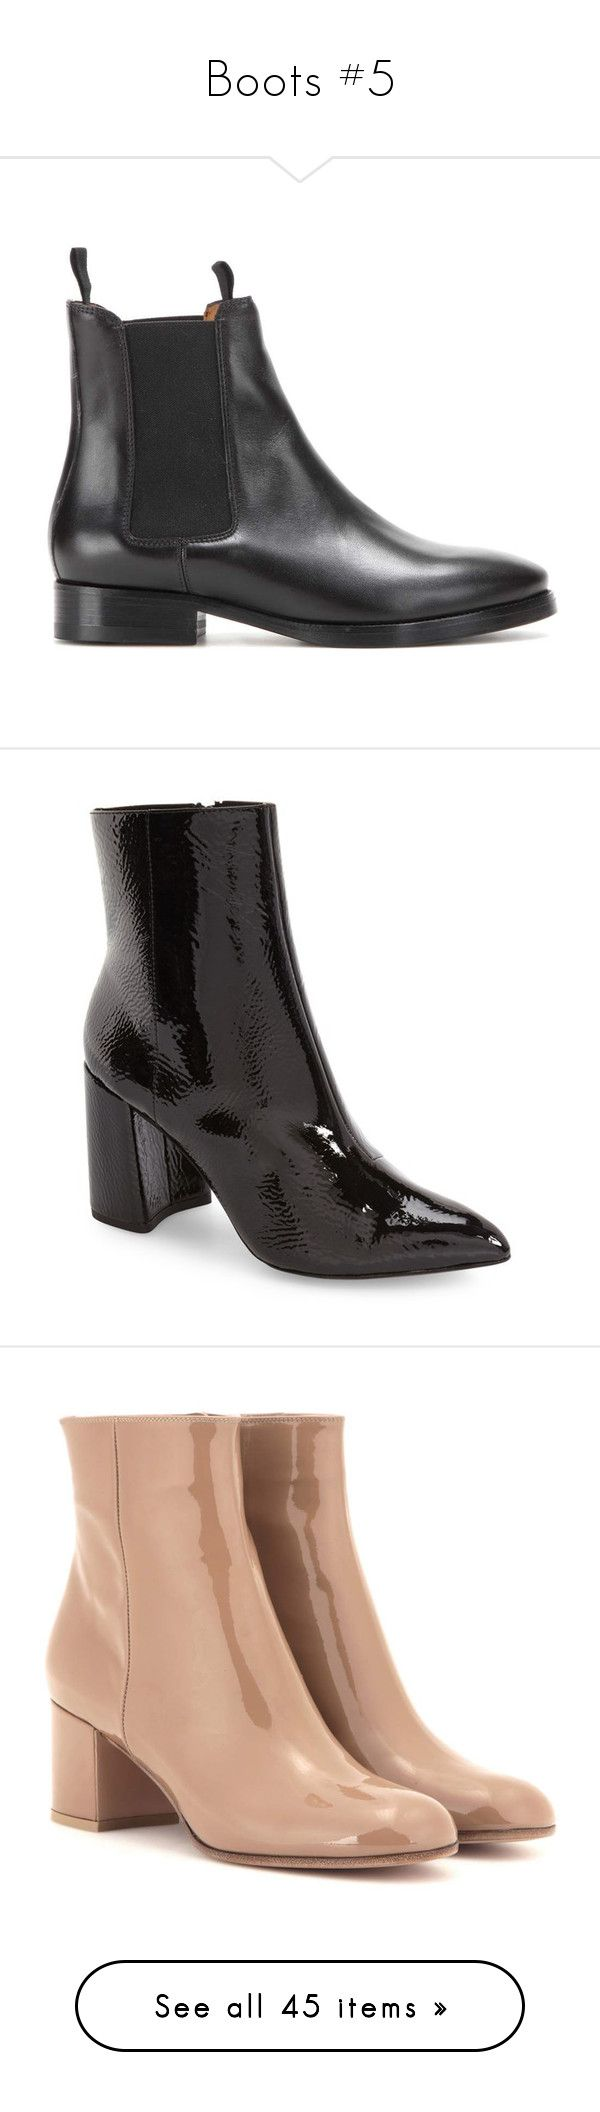 """""""Boots #5"""" by marissa-91 ❤ liked on Polyvore featuring shoes, boots, ankle booties, acne, real leather boots, leather booties, black booties, leather chelsea boots, black leather booties and black"""